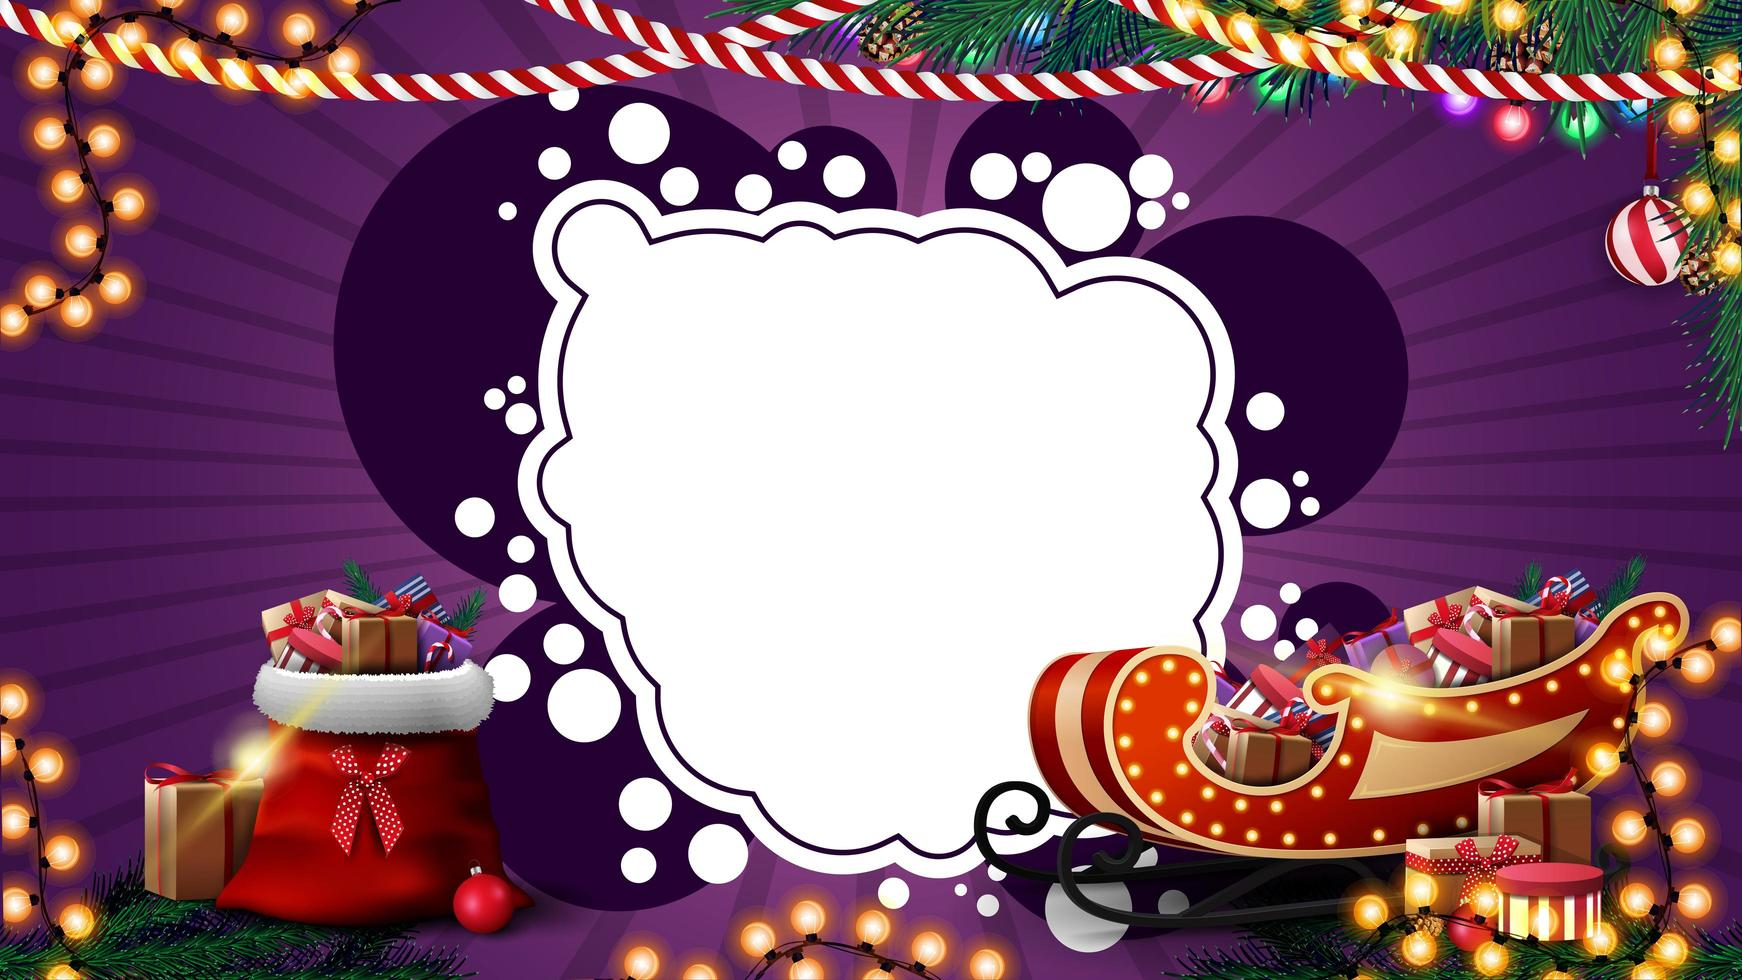 Purple Christmas template for postcard or discount with garlands, white abstract cloud for your text, Santa Claus bag and Santa Sleigh with presents vector